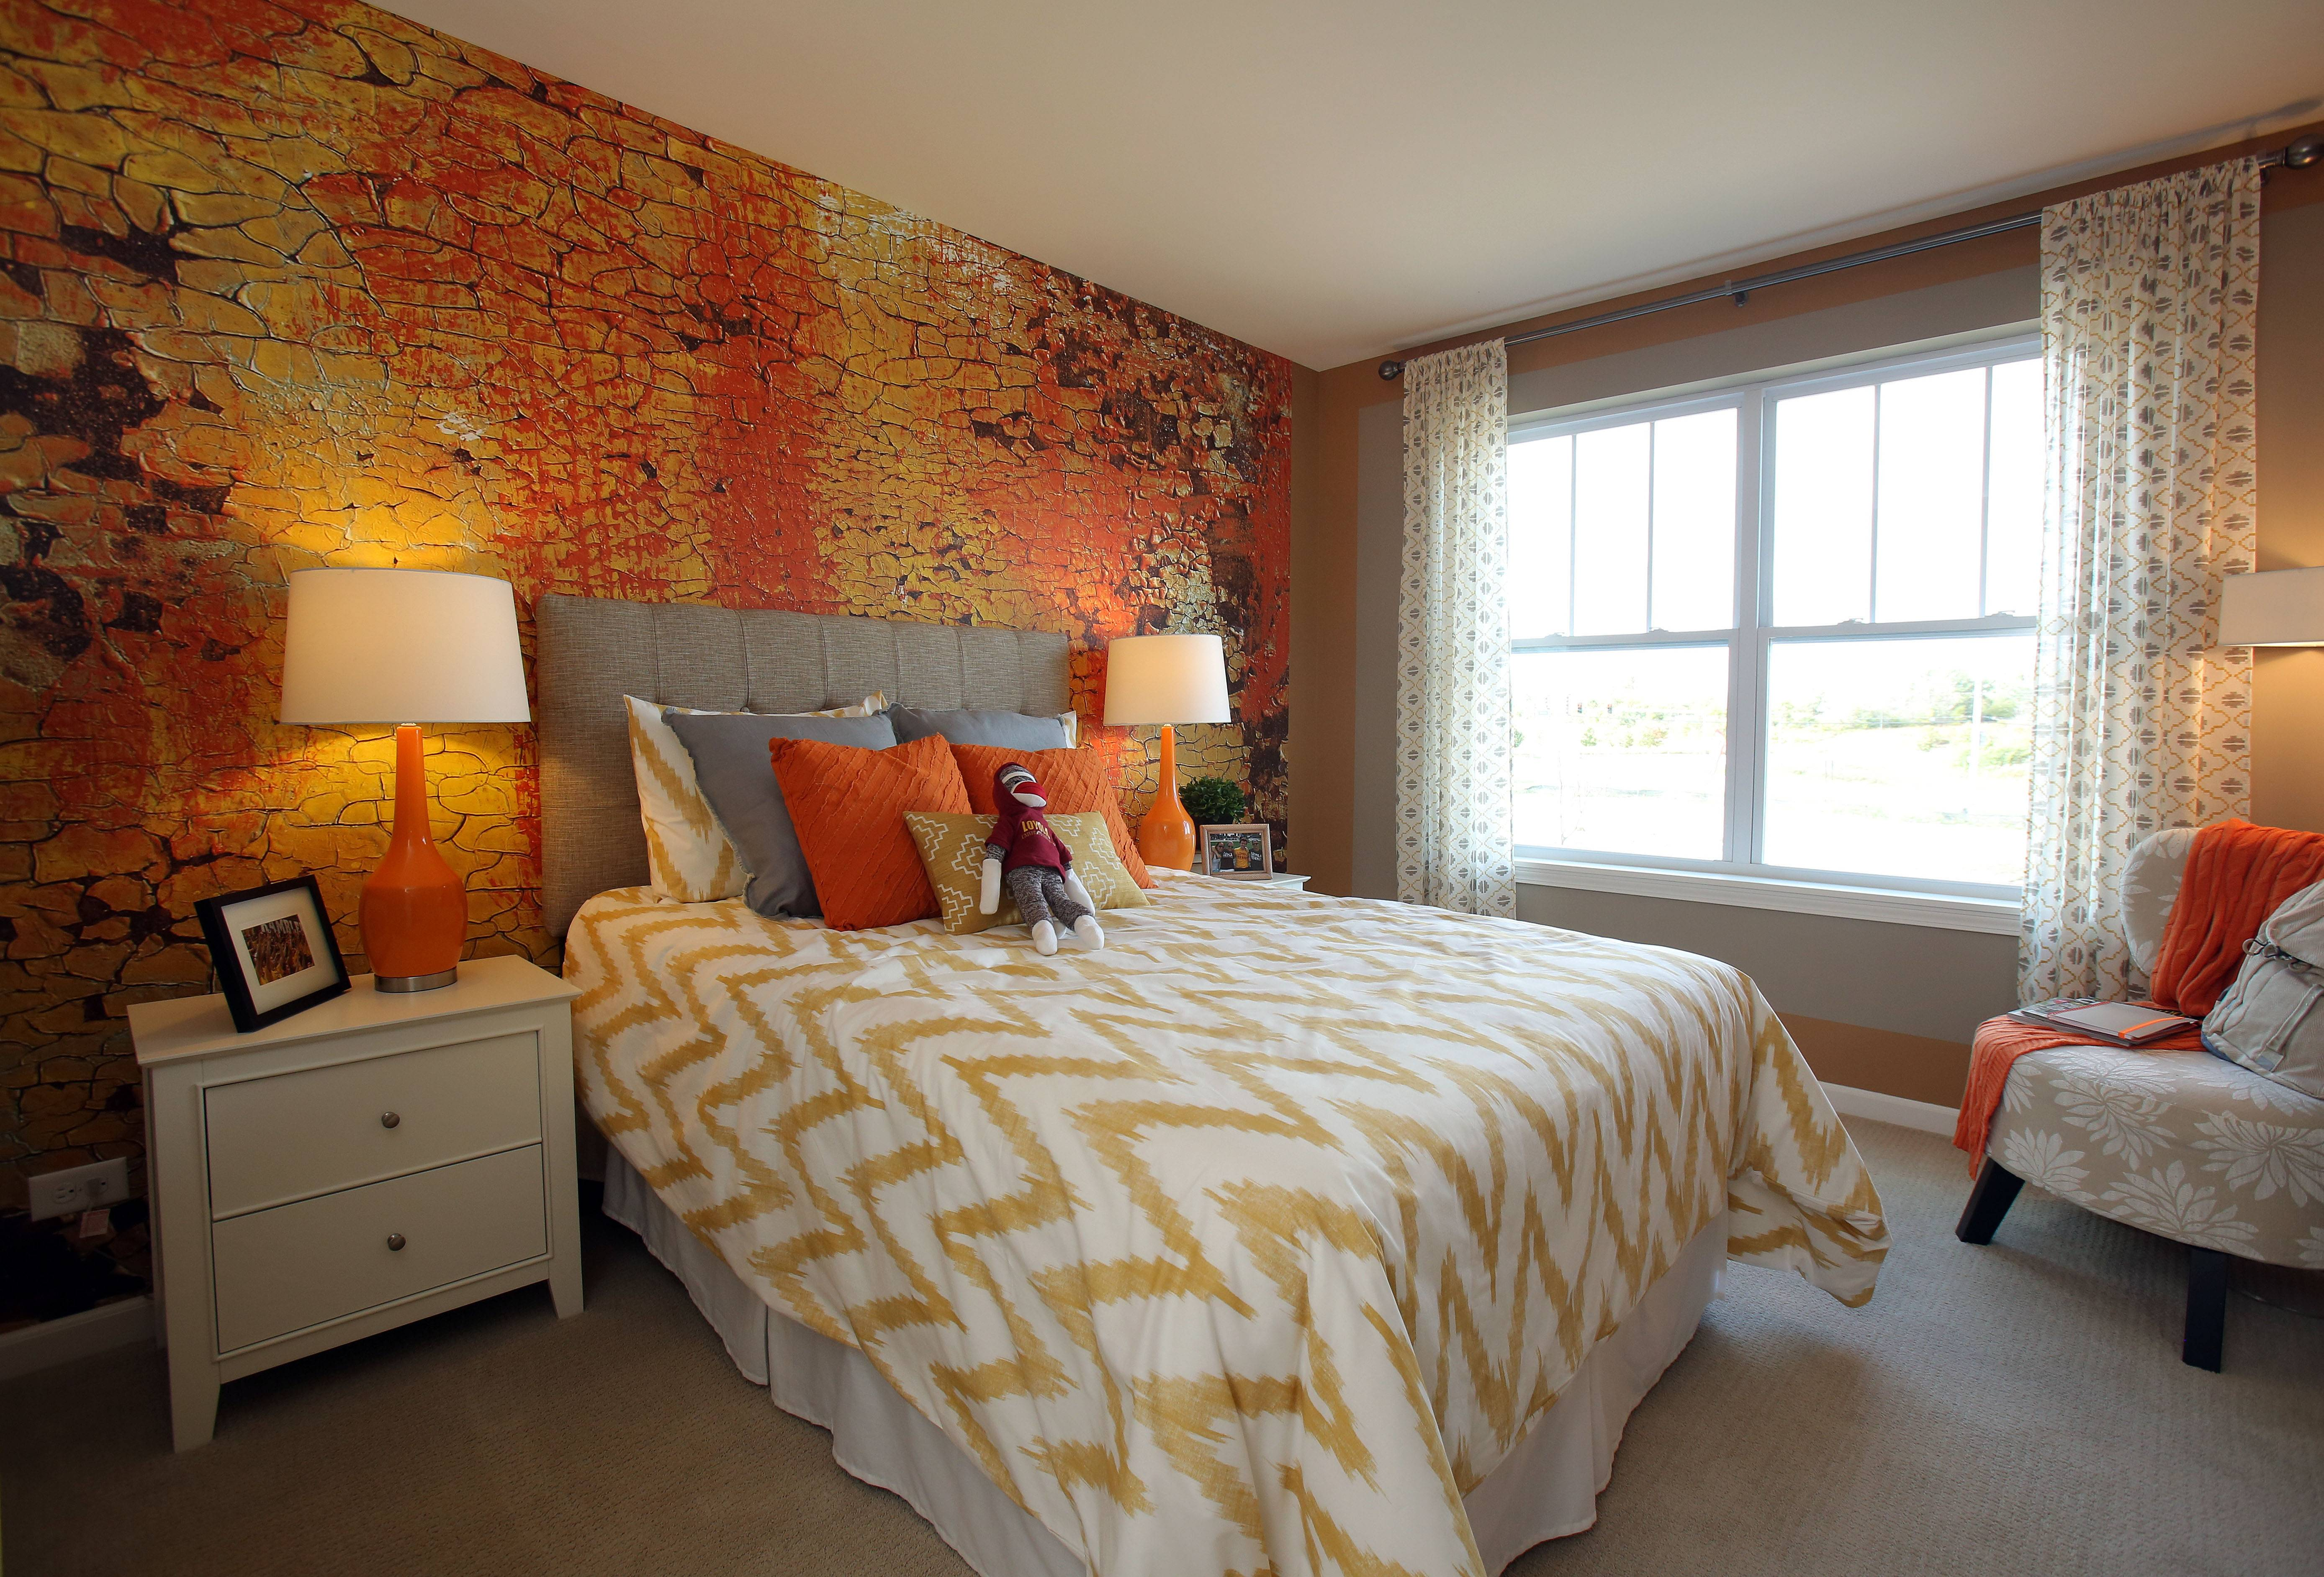 The second bedroom in the Summit model home is furnished for a daughter.